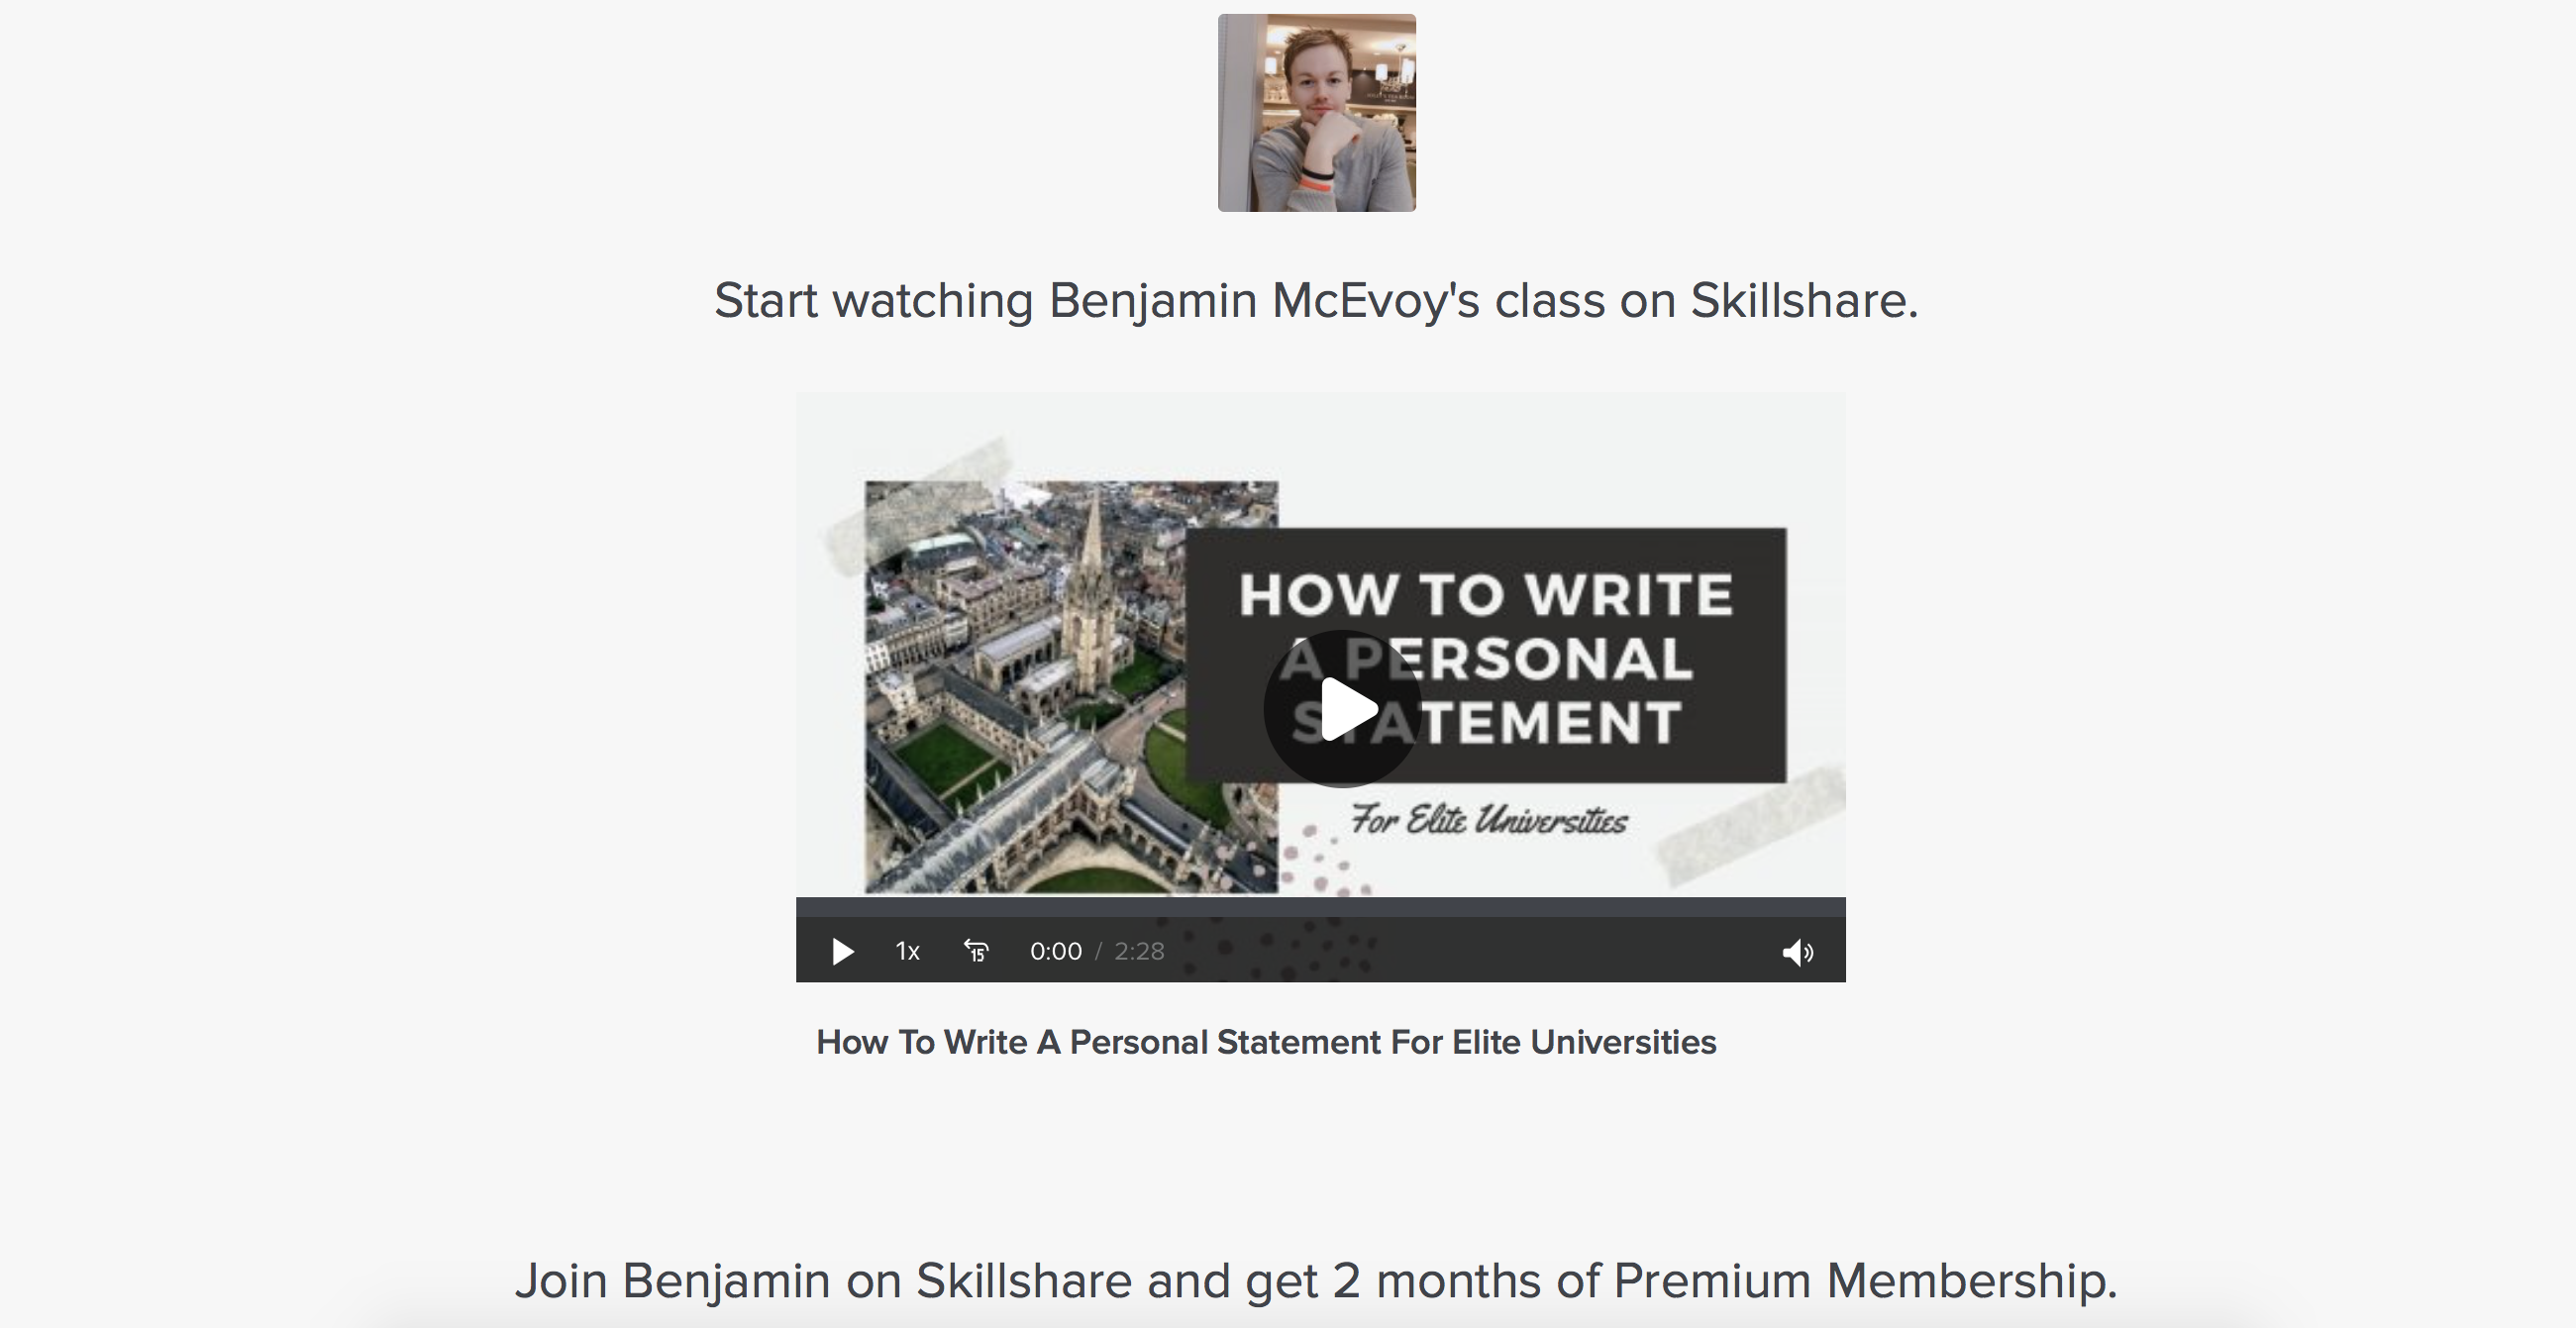 How to Write a Personal Statement for Elite Universities (Skillshare